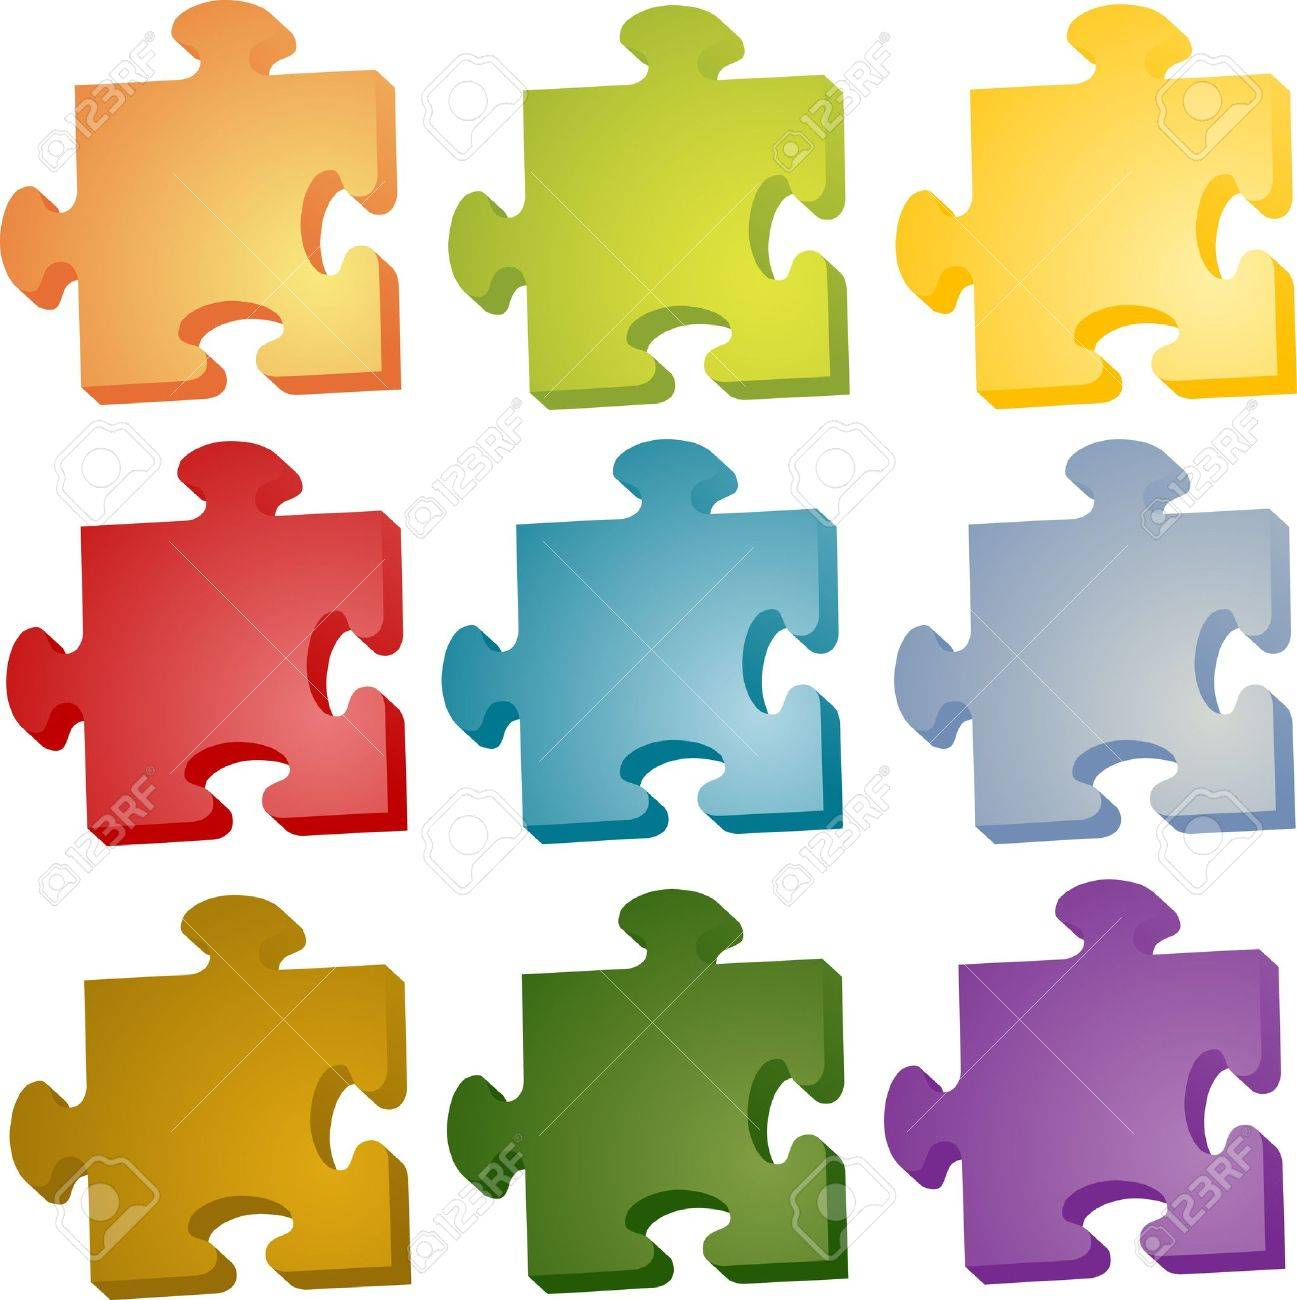 set of jigsaw puzzle pieces in different colors stock photo